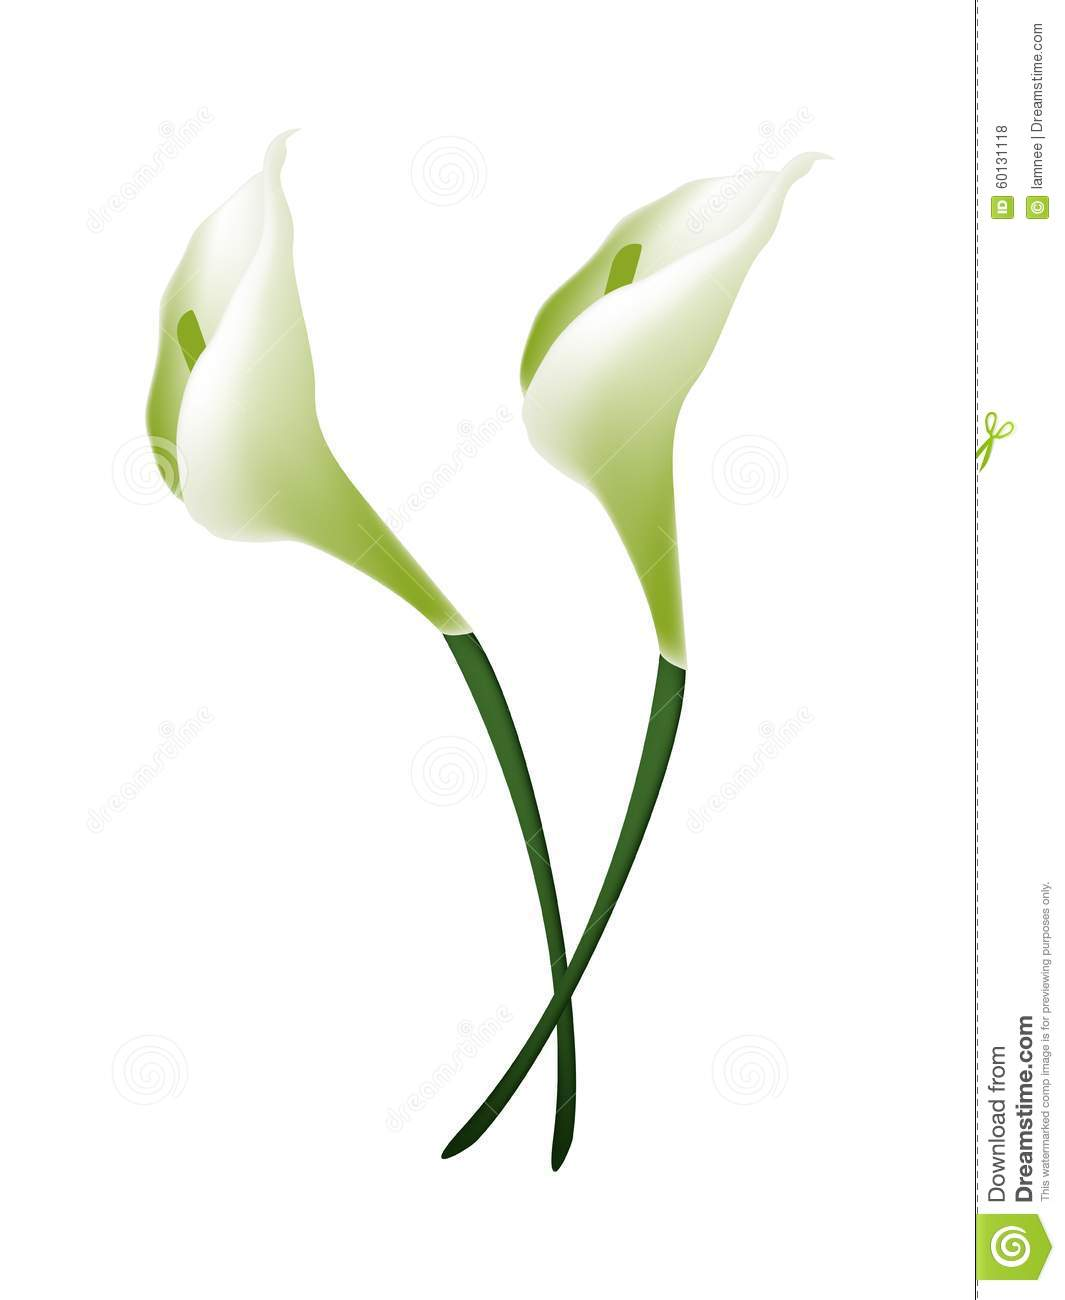 White calla lily flowers or white arum lily blossoms stock vector white calla lily flowers or white arum lily blossoms izmirmasajfo